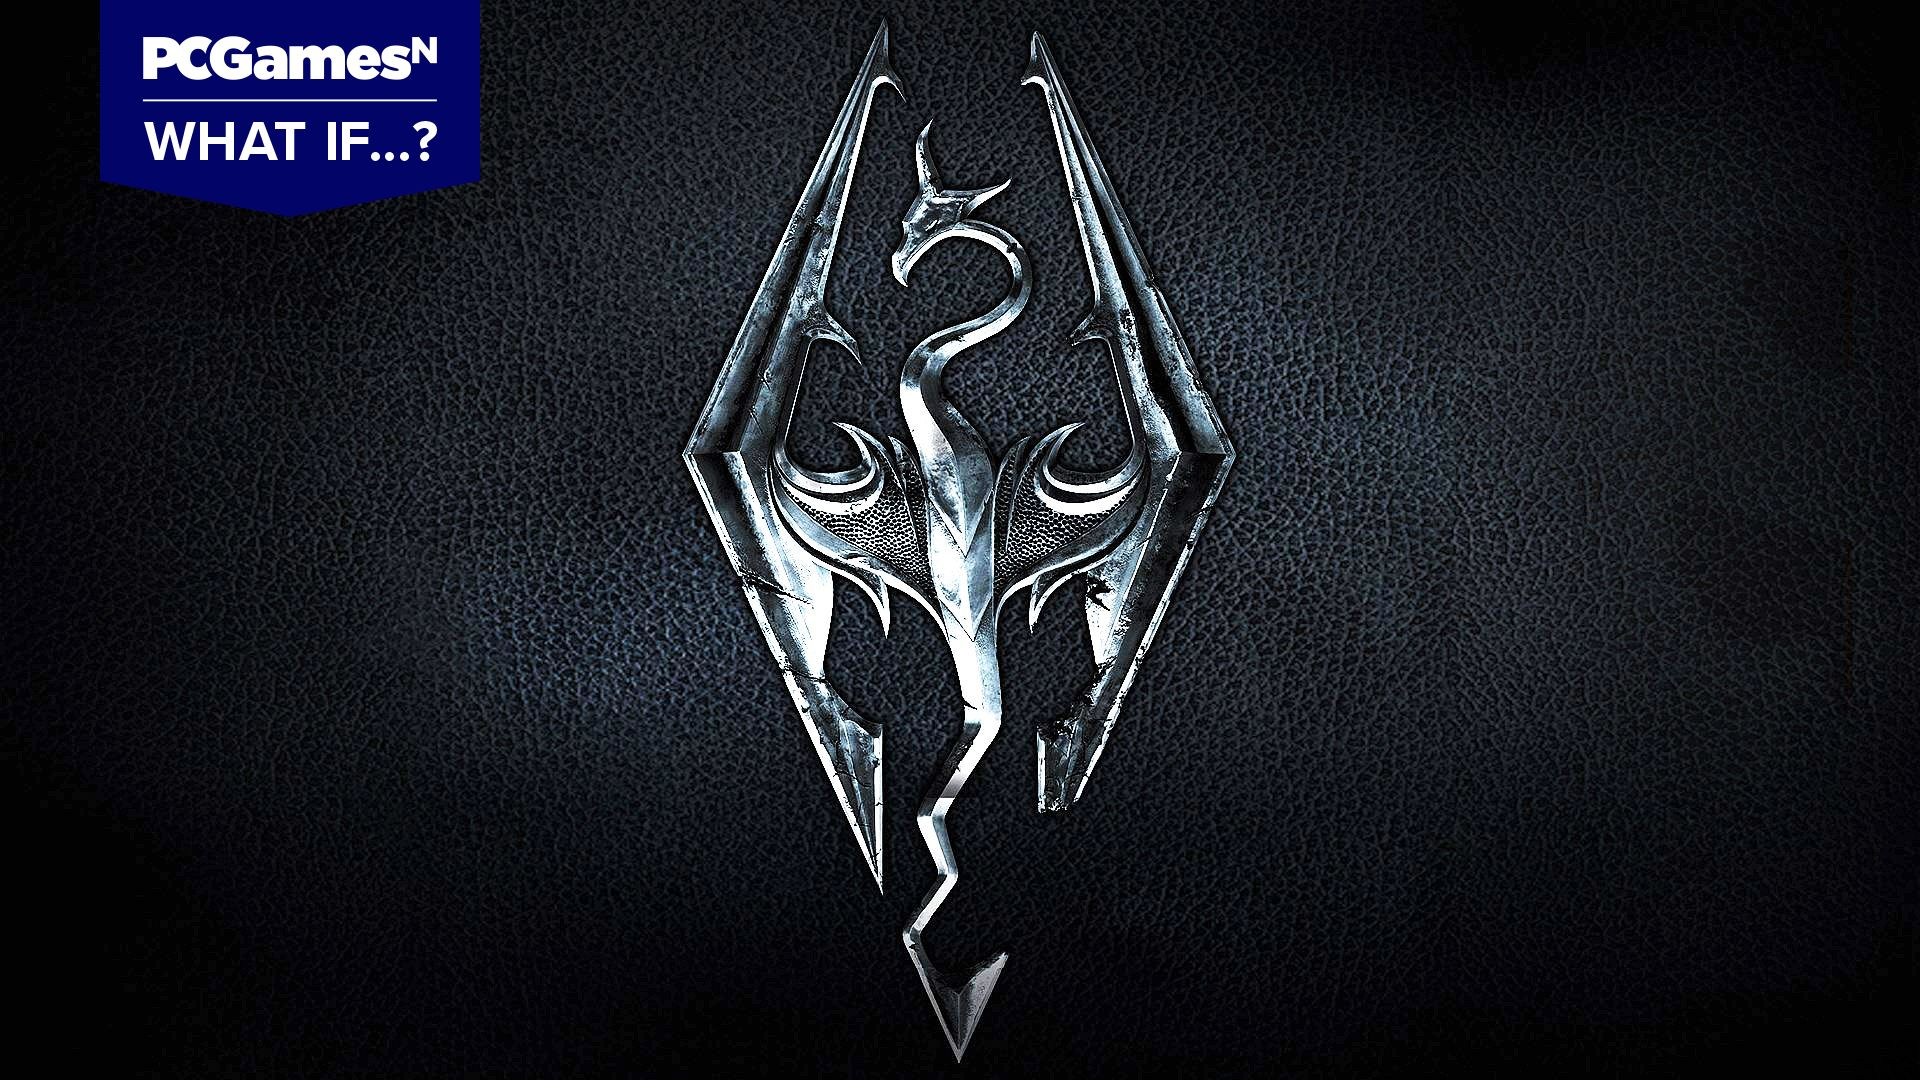 What if: Microsoft made Skyrim free with Windows?